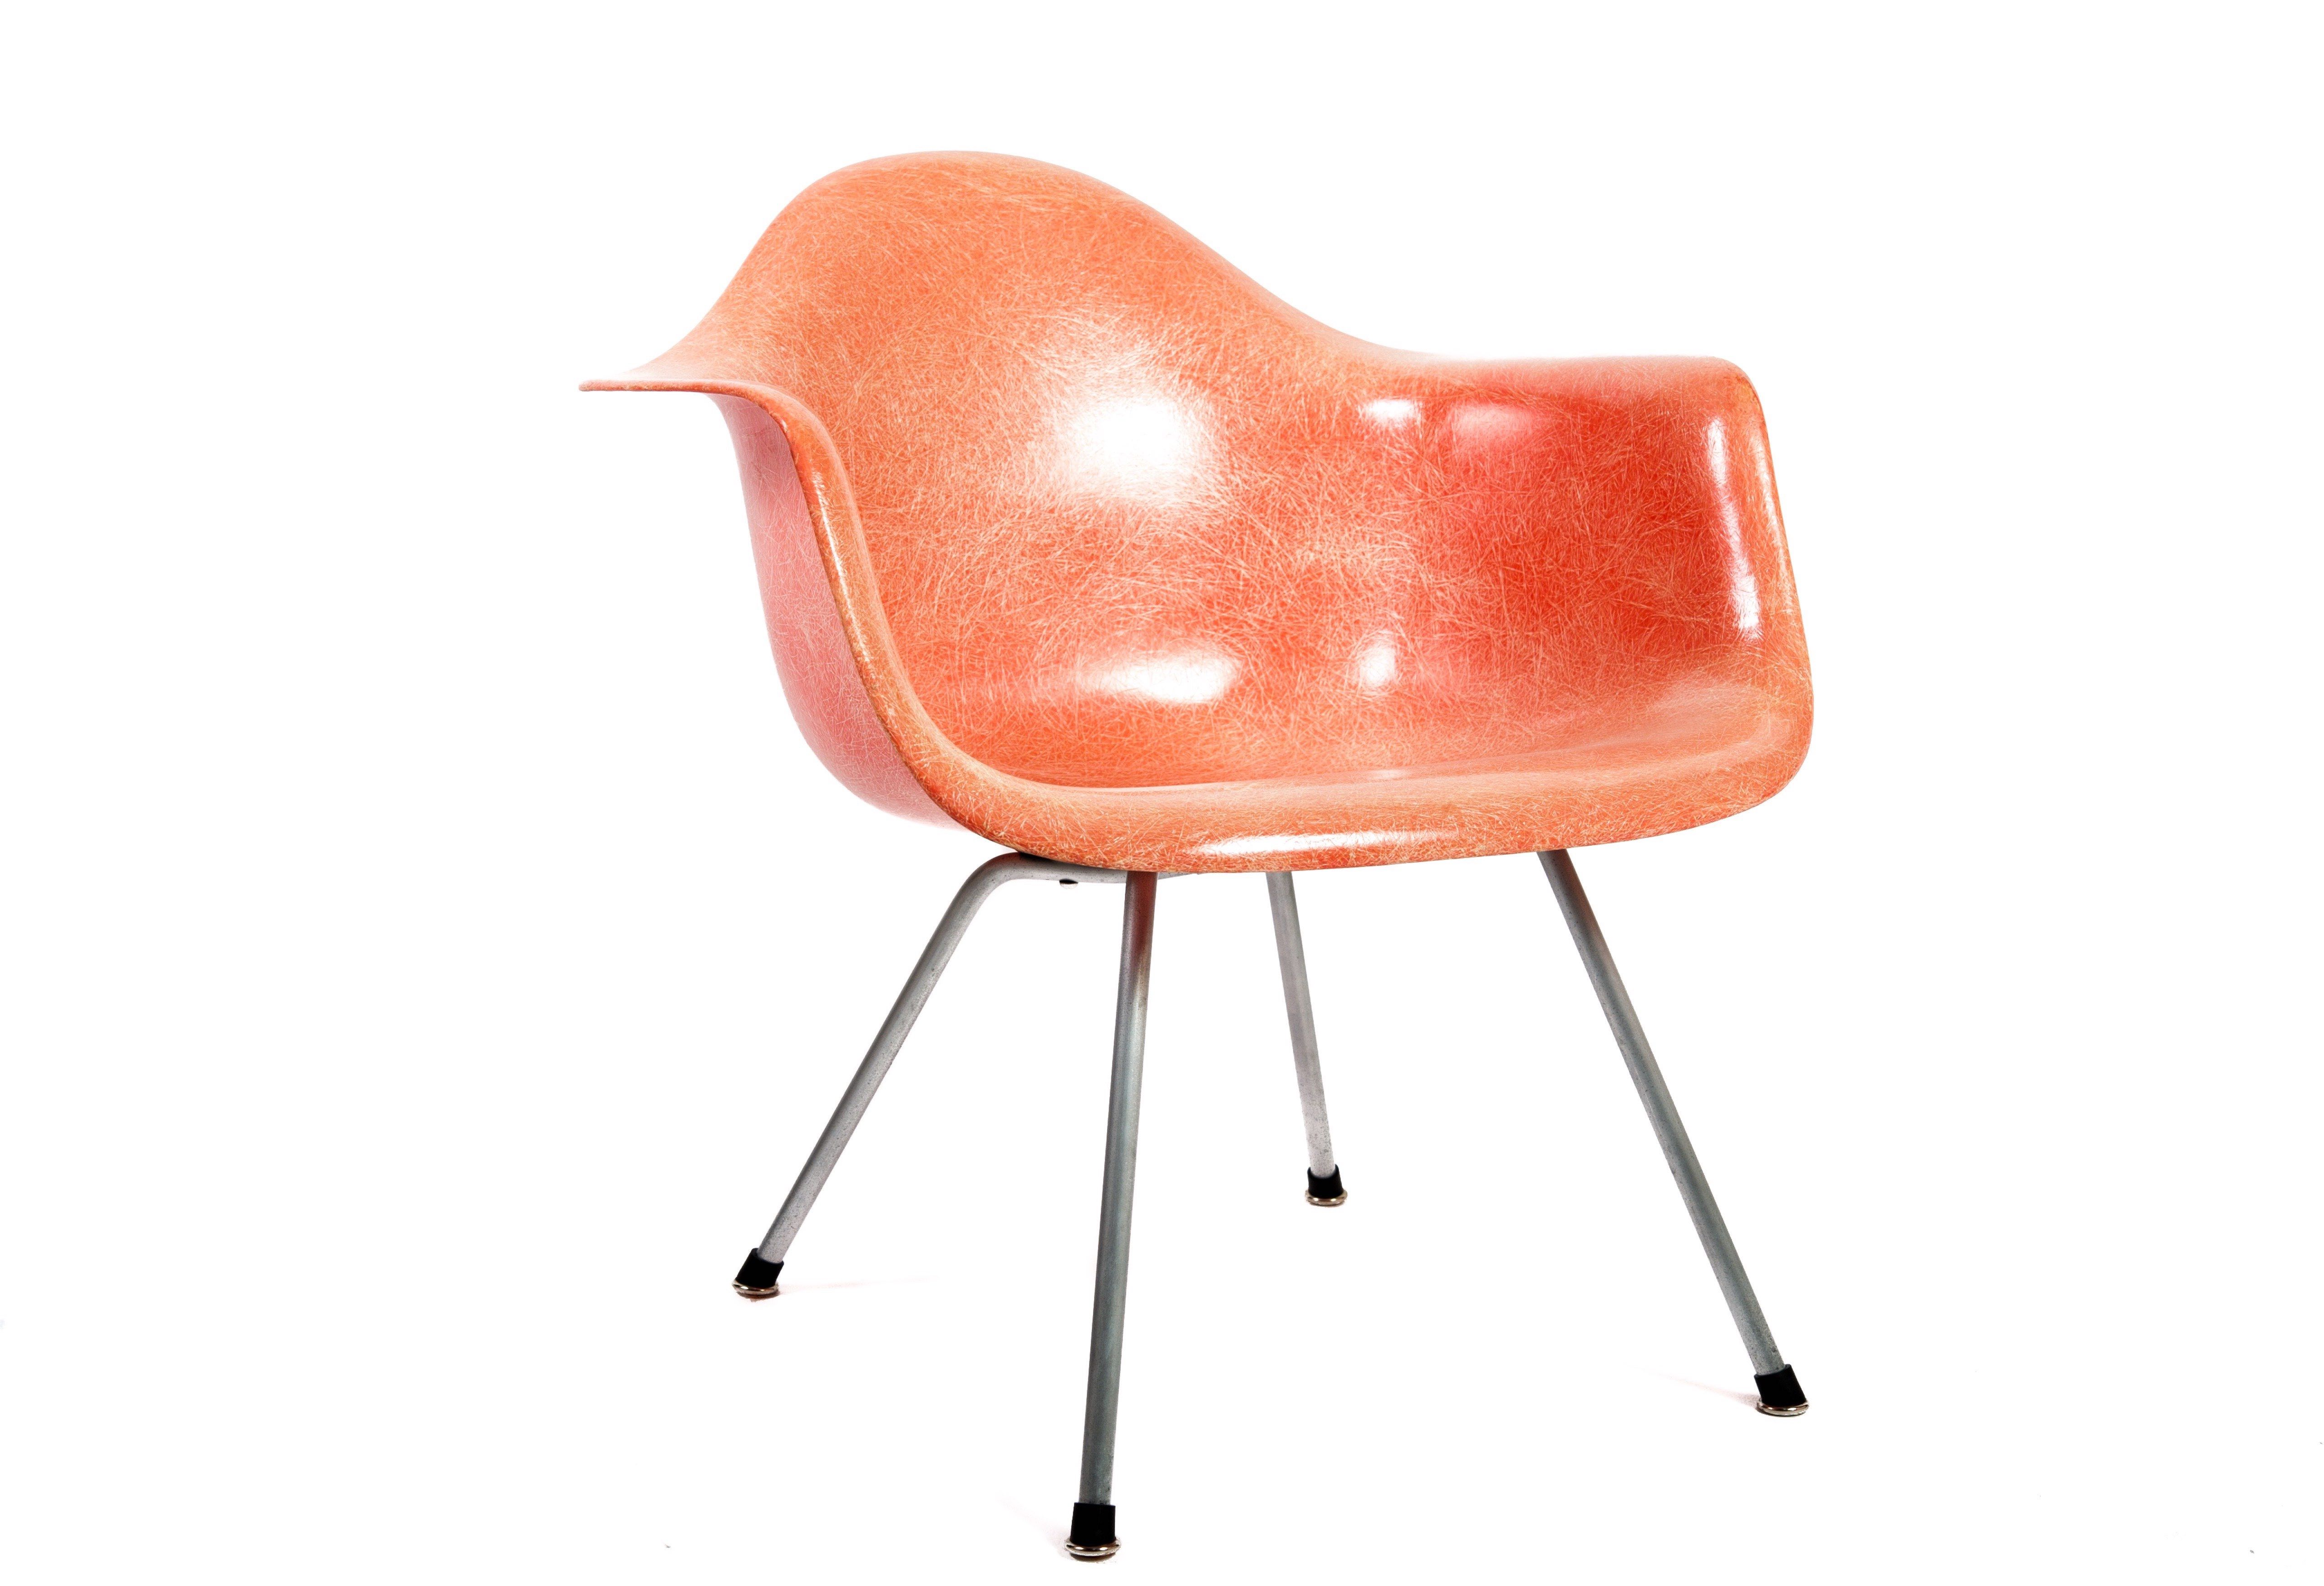 Red 1953 Zenith Plastics Eames DAX (& Variants) Arm Chairs in very good condition